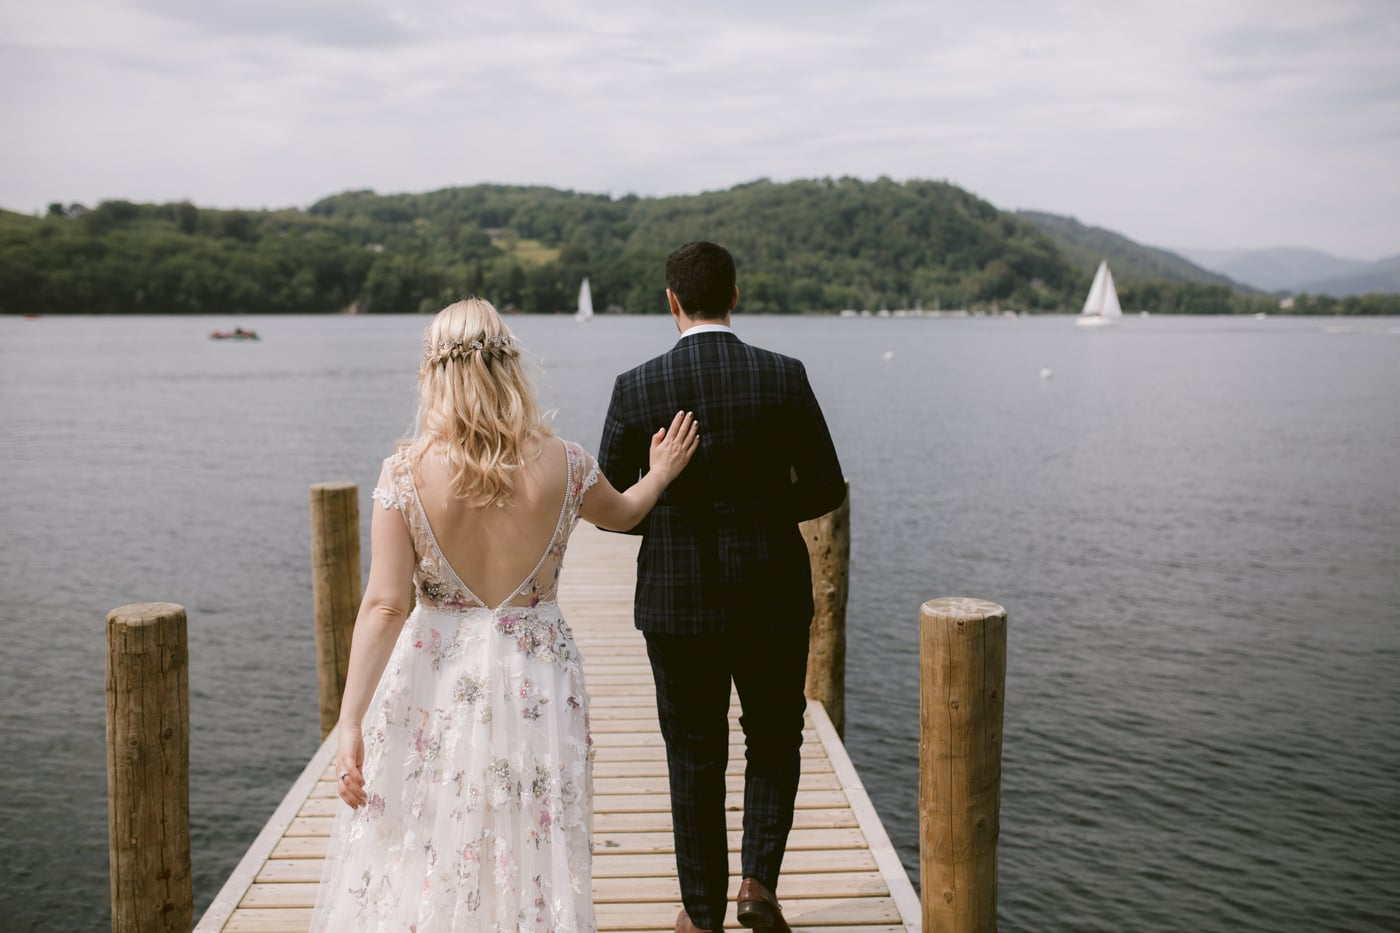 Bride and Groom Lakeside Together at Storrs Hall Wedding